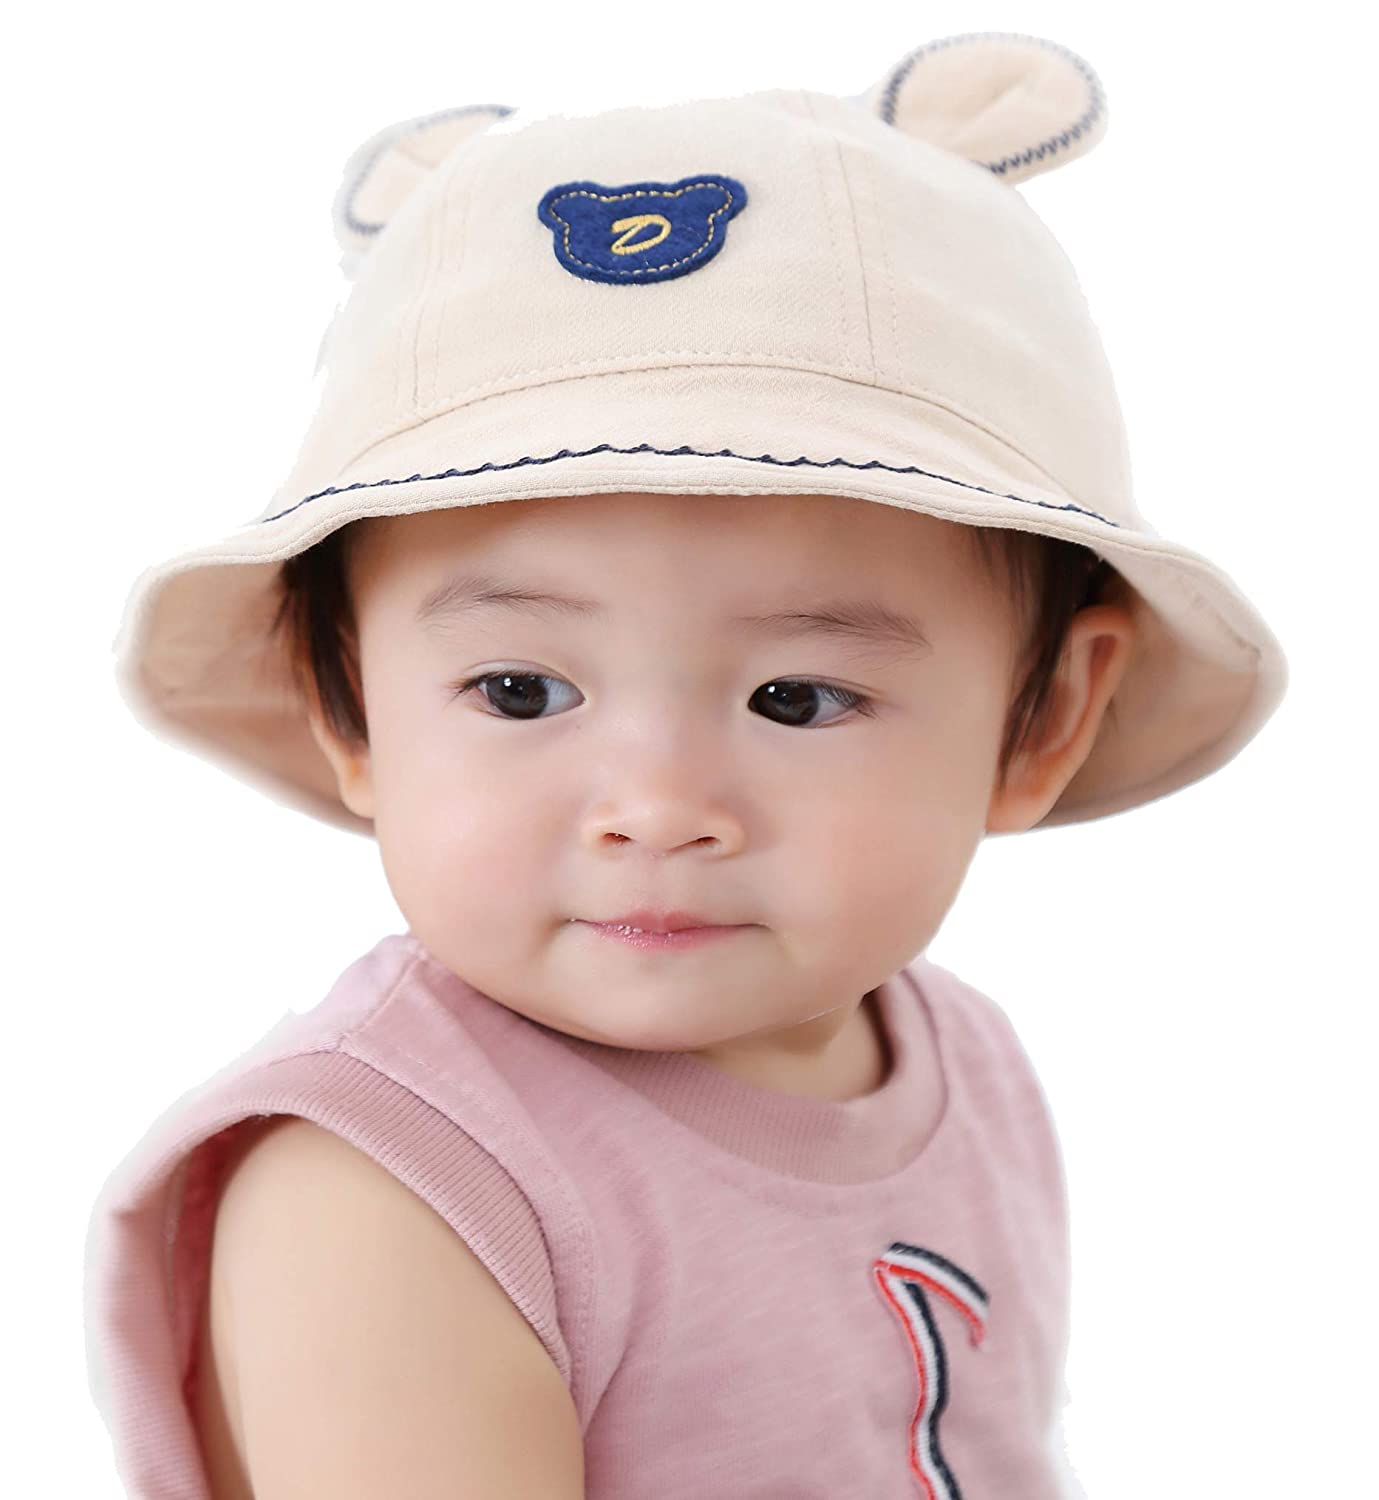 0dc22884 Amazon.com: Bonvince Baby Sun Hat with Chin Strap, Cotton Toddler Kids Sun  Bucket Cap for Boys Spring Summer UPF 50+ Beige: Clothing